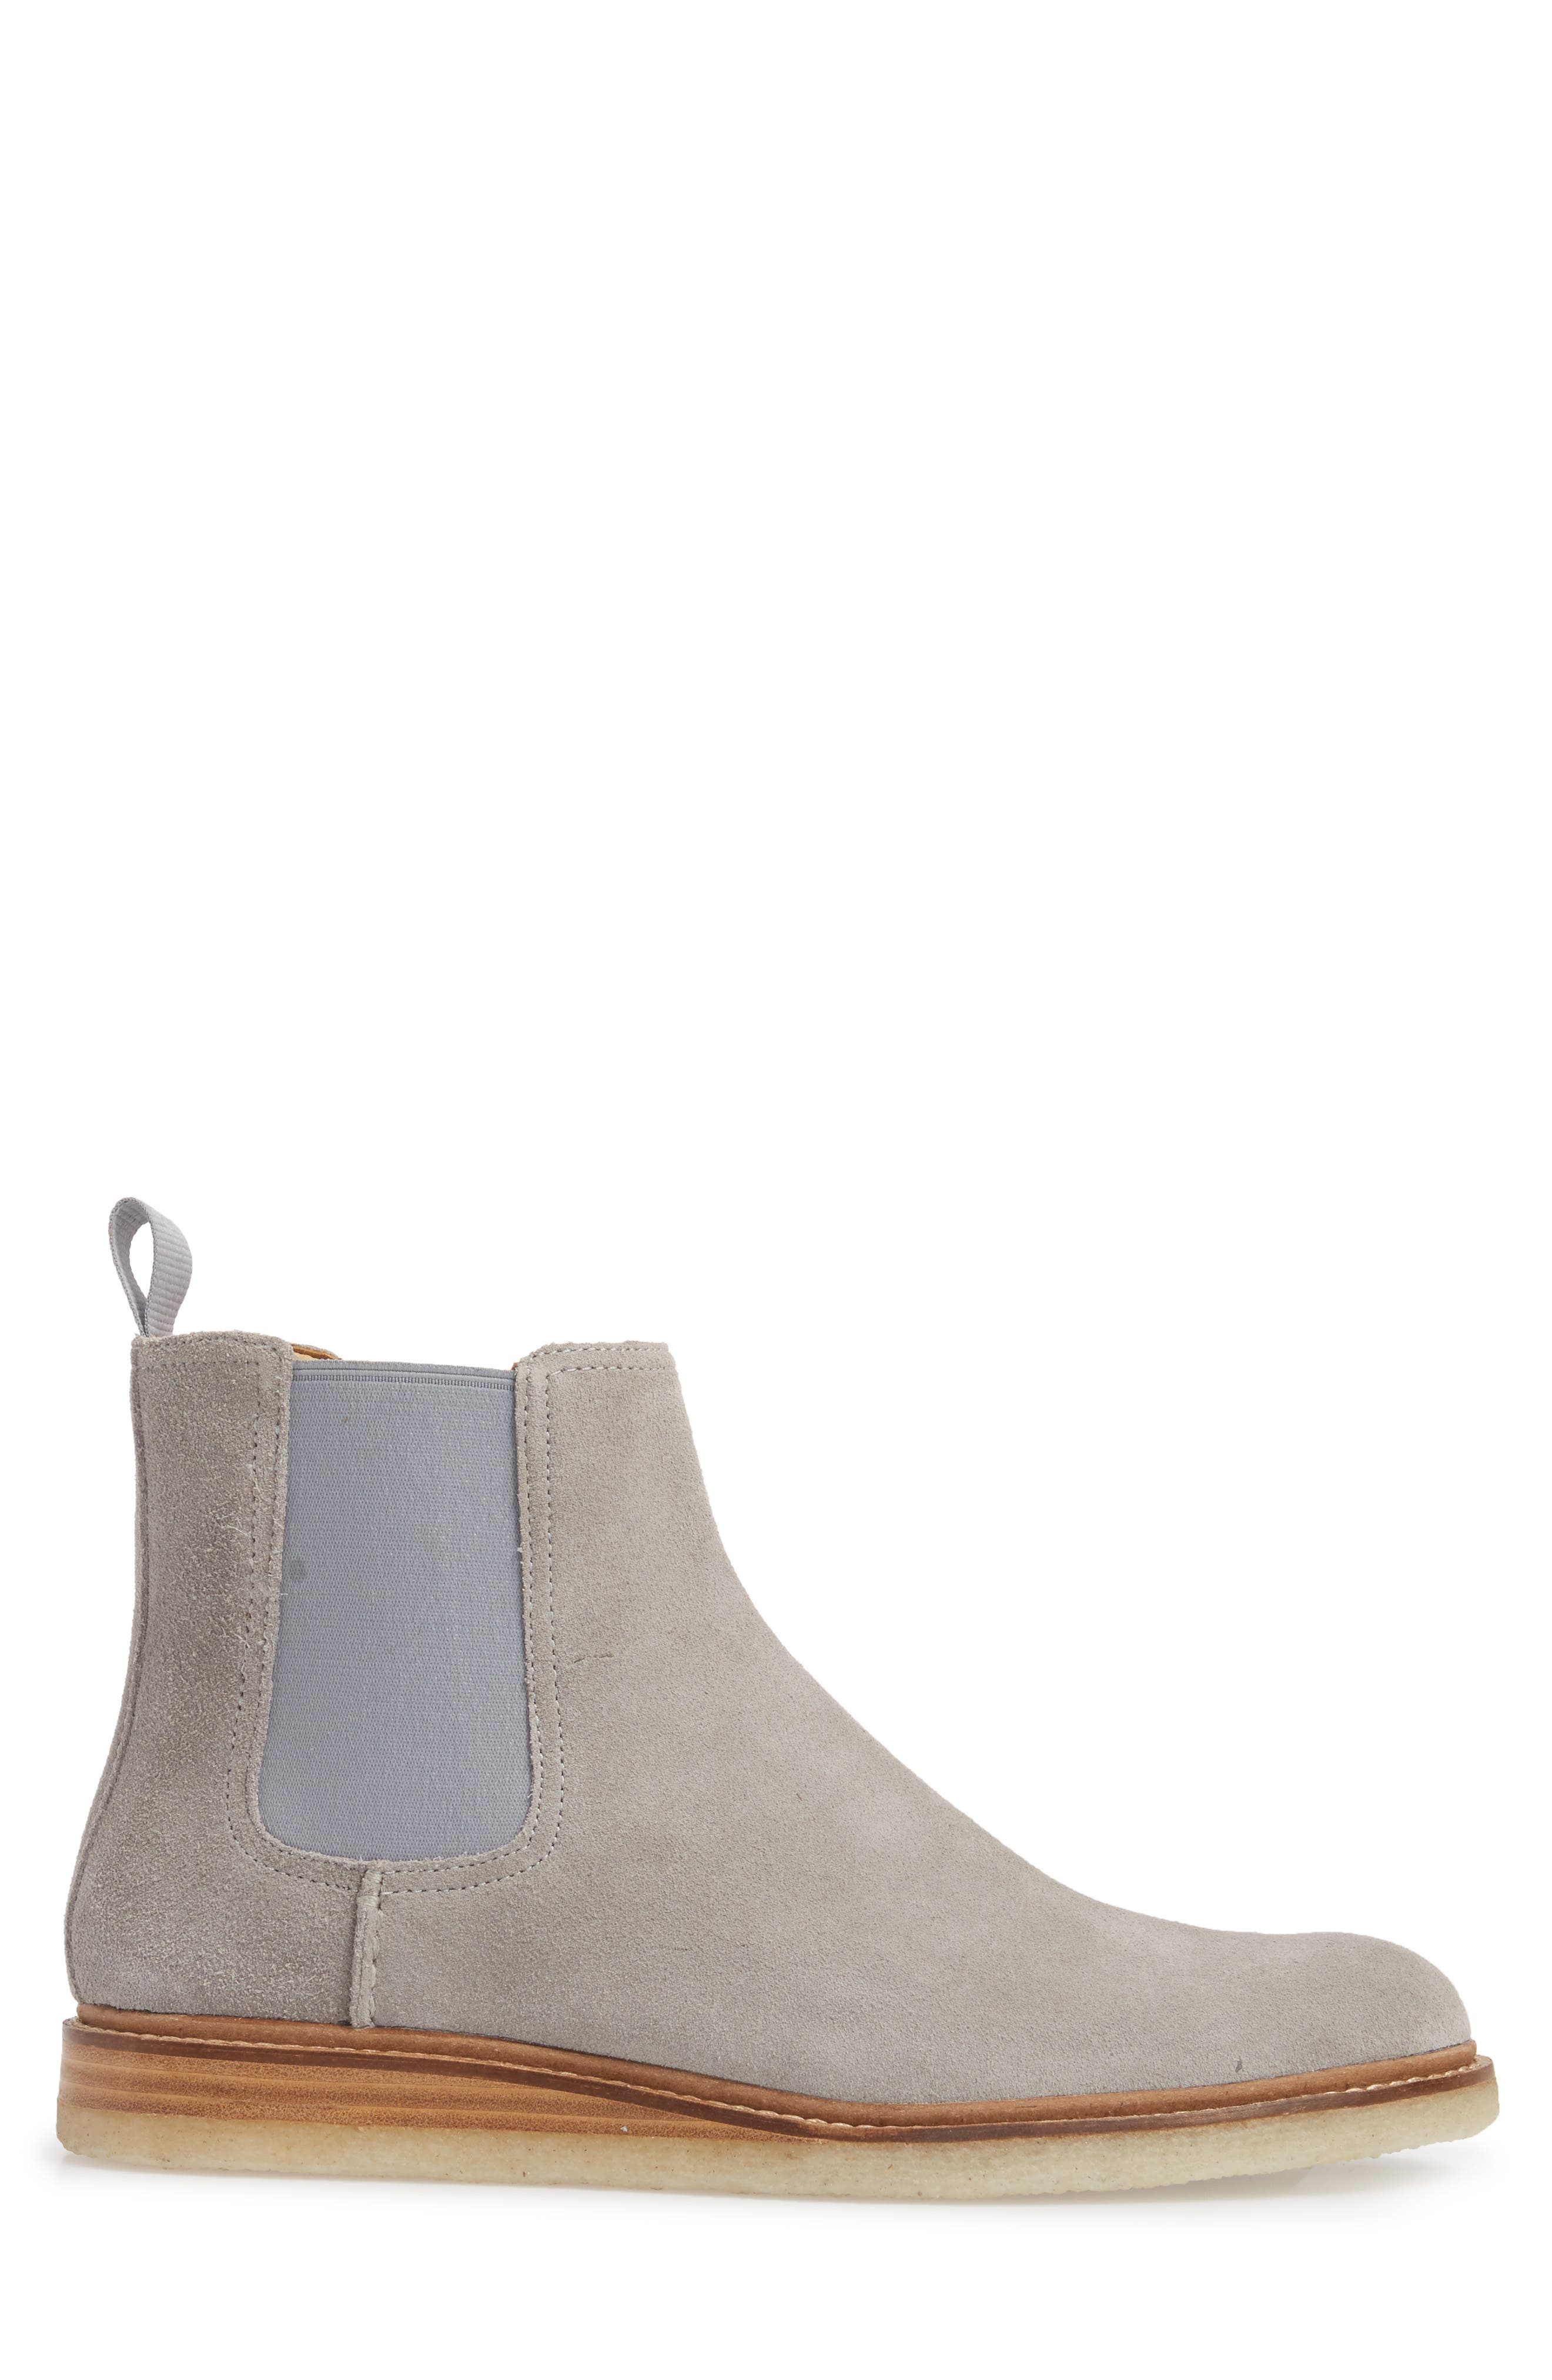 Gold Cup Crepe Chelsea Boot,                             Alternate thumbnail 3, color,                             Grey Leather/ Suede